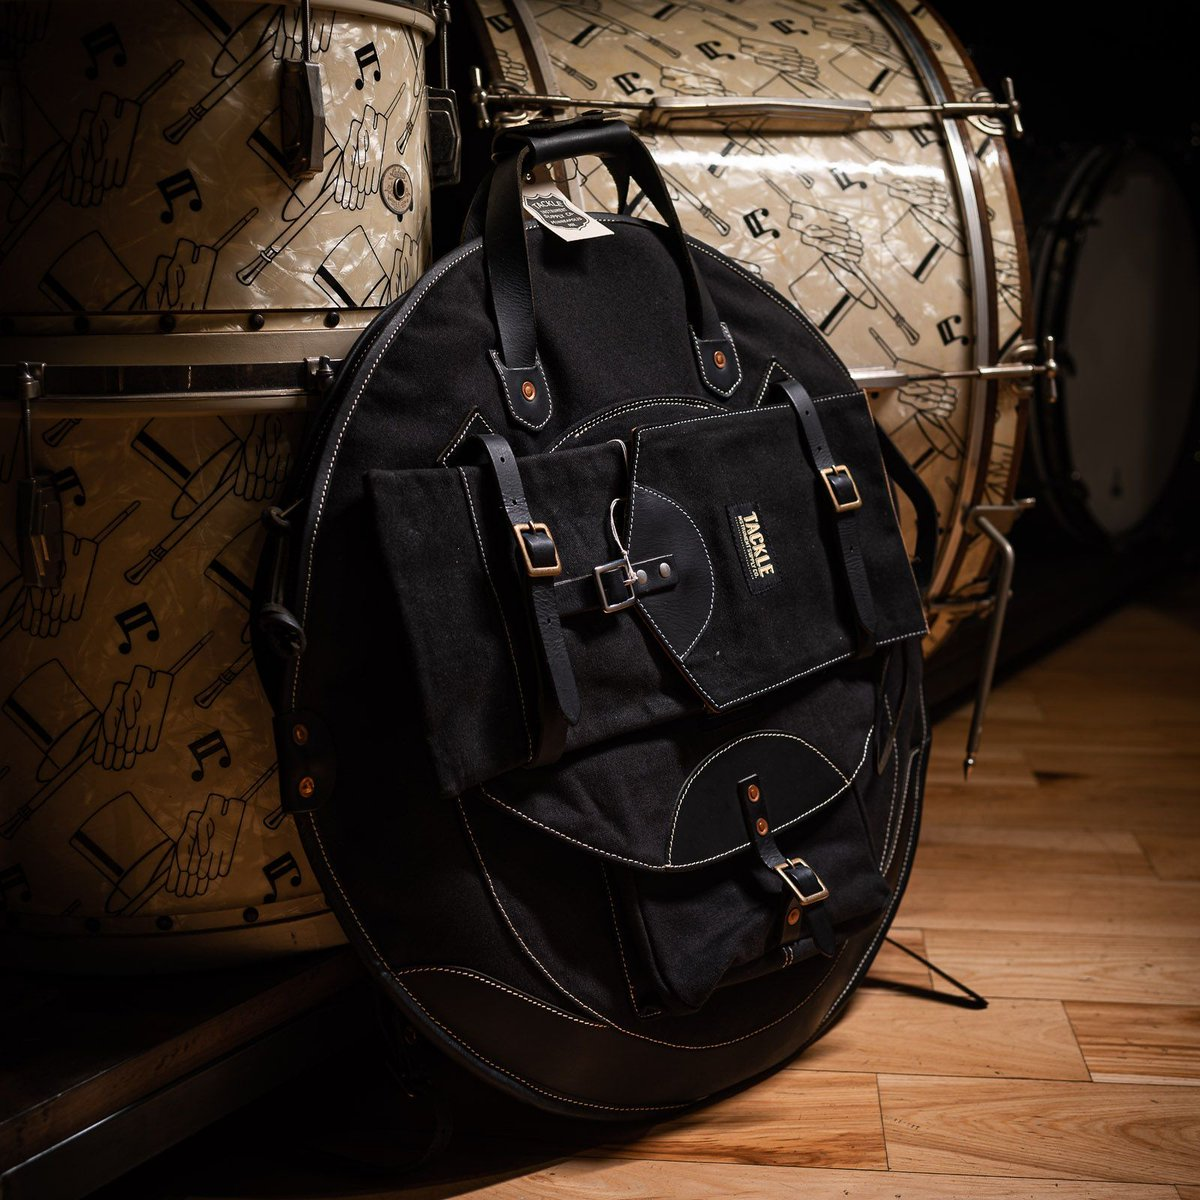 """Tackle products are hand made, high quality, and immensely stylish. Upgrade your life! http://bit.ly/376AJe0 #cde #chicagodrumexchange #chicagomusicexchange #drumlove #drumsdaily #tackle #22"""" #backpack #cymbalbag #black #snaredrumfreakzpic.twitter.com/0ZqvUm88LK"""